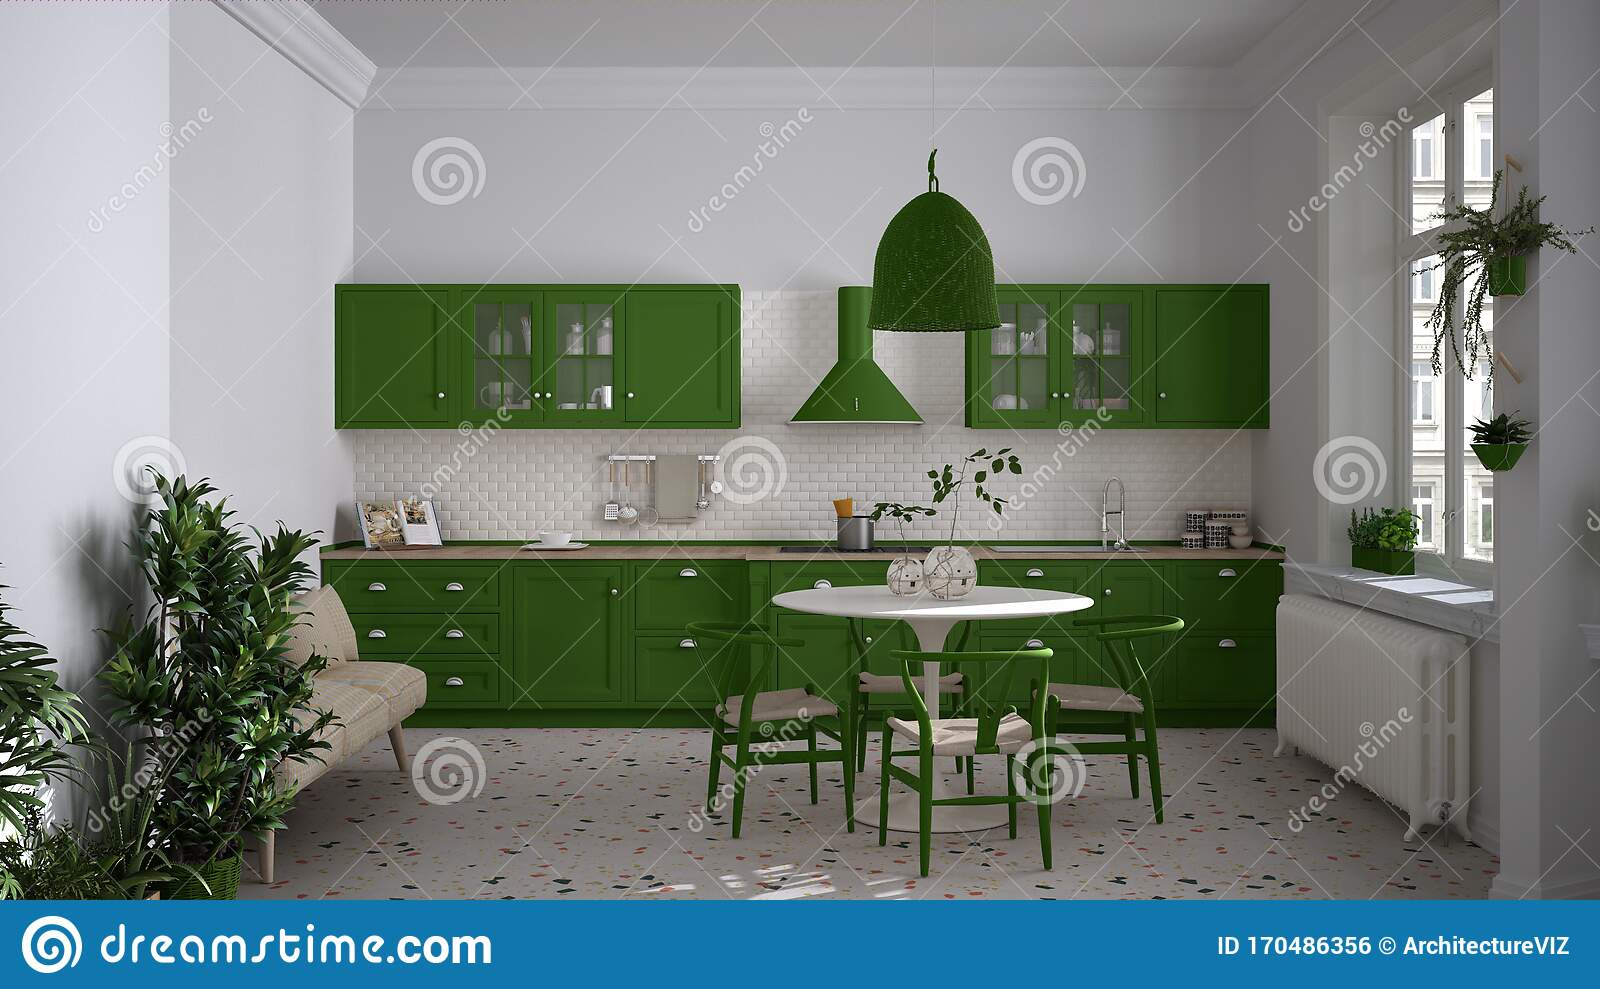 Retro White And Green Vintage Kitchen With Terrazzo Marble Floor Panoramic Windows Dining Room Round Table With Wooden Chairs Stock Photo Image Of Lifestyle Colors 170486356